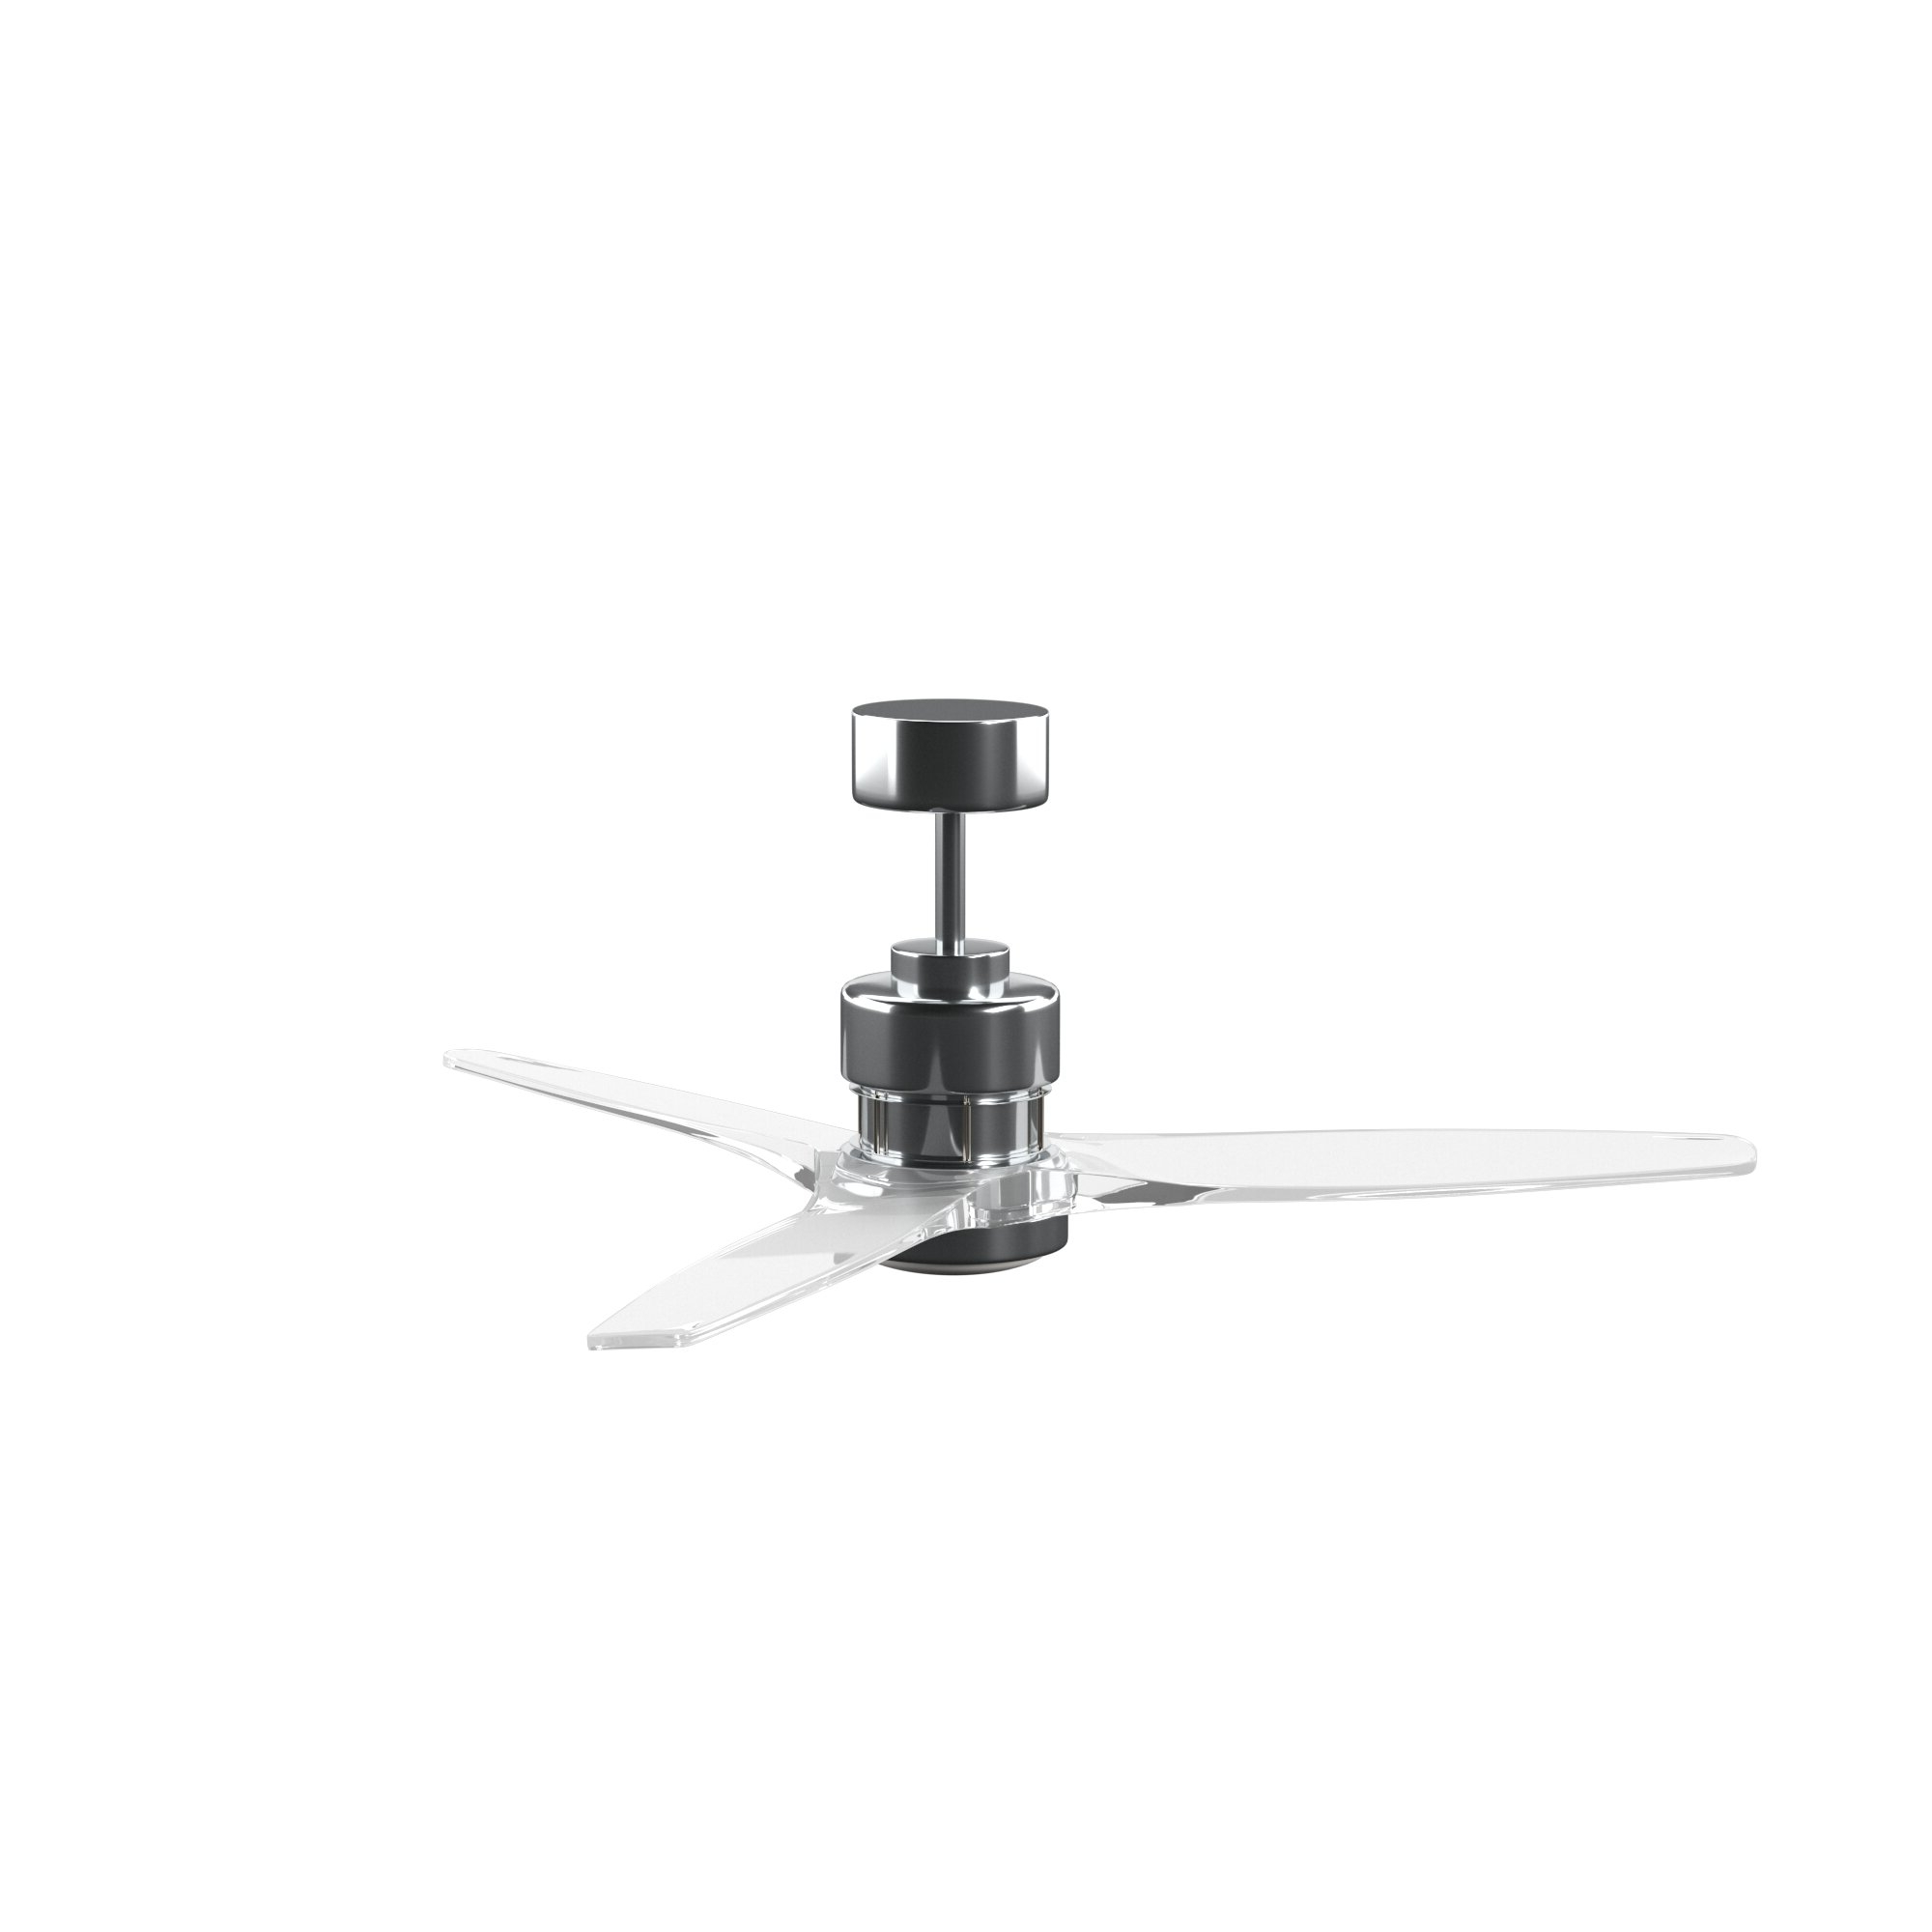 """Fashionable Emil 3 Blade Ceiling Fans Inside 52"""" Mcdaniels 3 Blade Led Ceiling Fan With Remote, Light Kit Included (View 14 of 20)"""